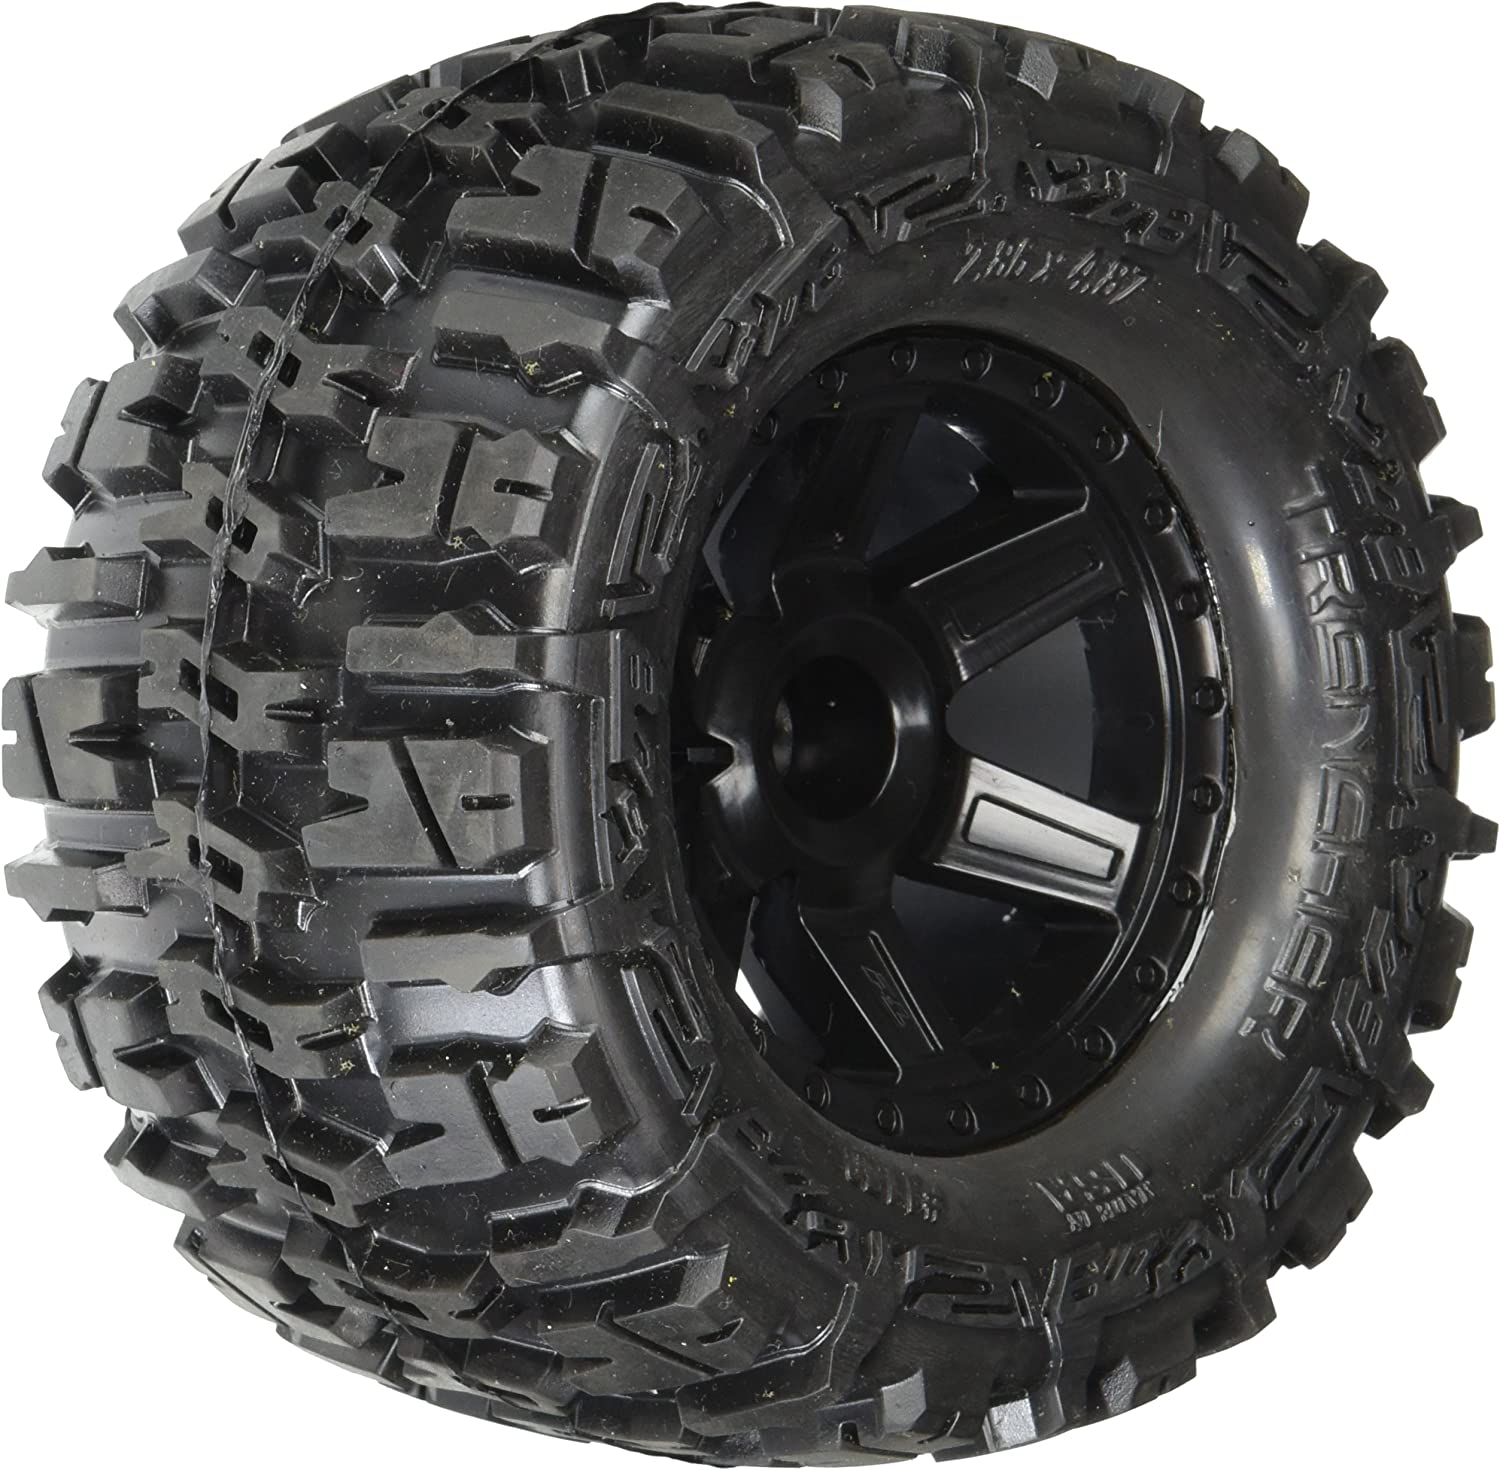 "Proline 117012 Trencher 2.8"" All Terrain Tires Mounted for Jato, Nitro, Stampede"